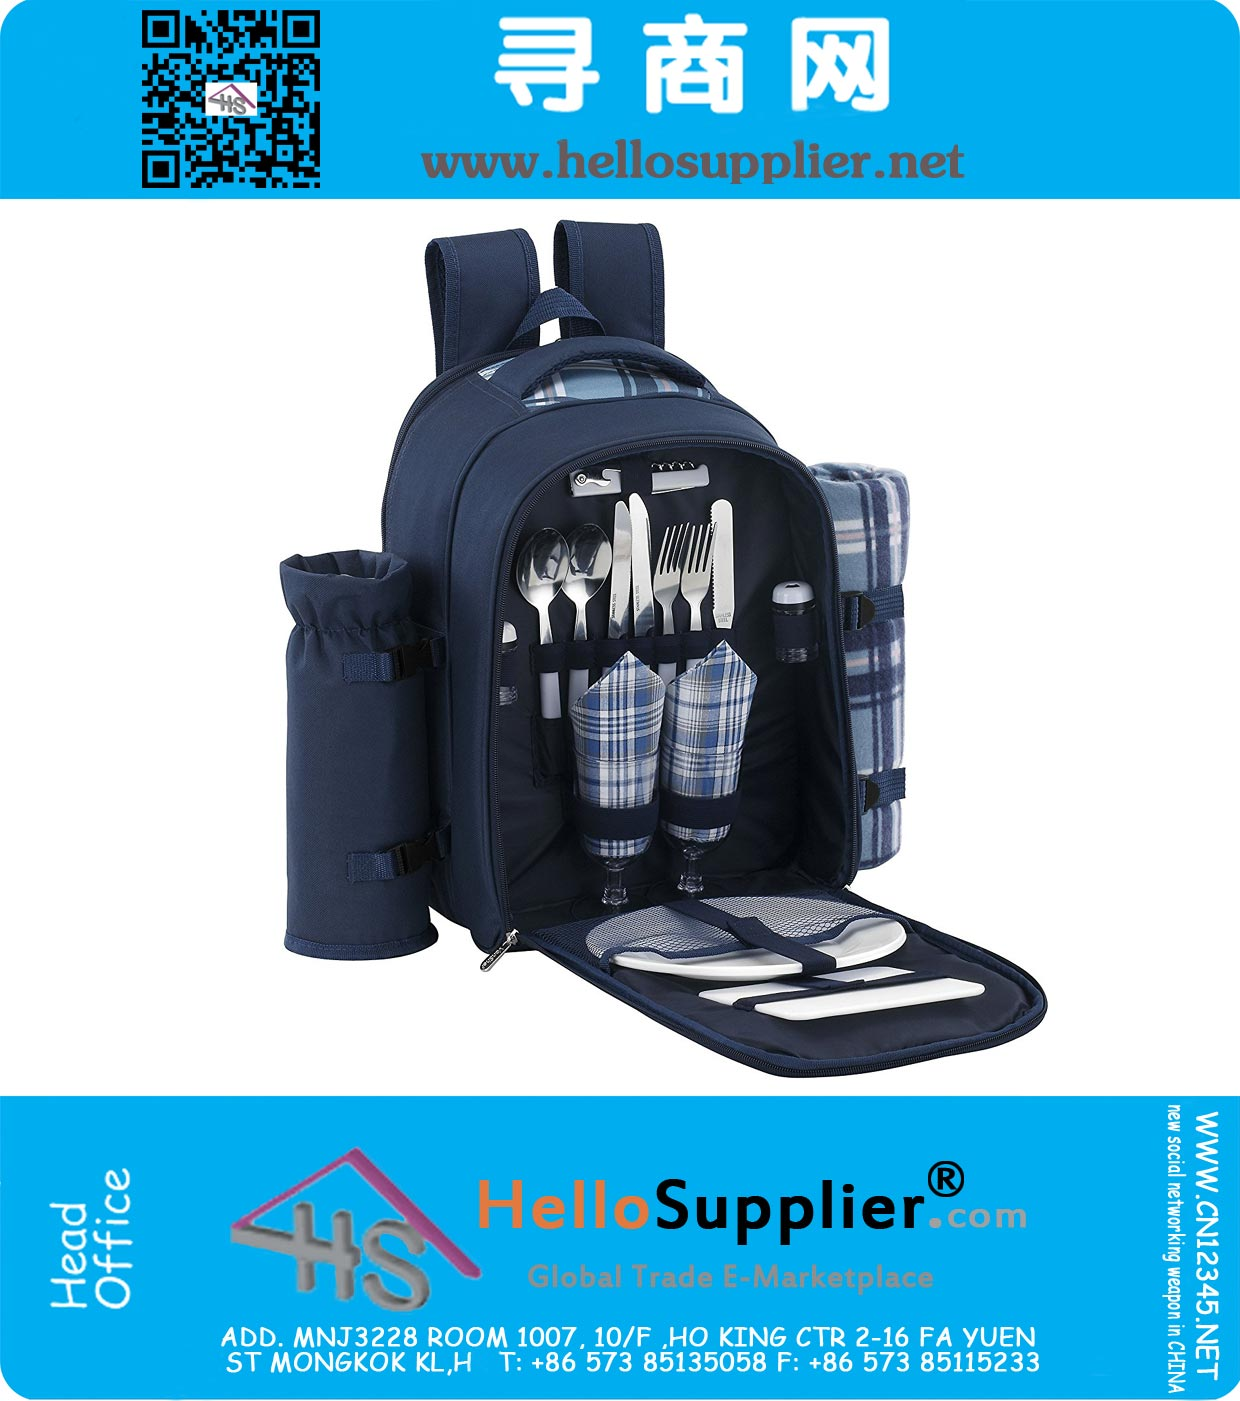 2 Person Blue Picnic Backpack Hamper with Cooler Compartment includes  Tableware And Fleece Blanket 0f489871f